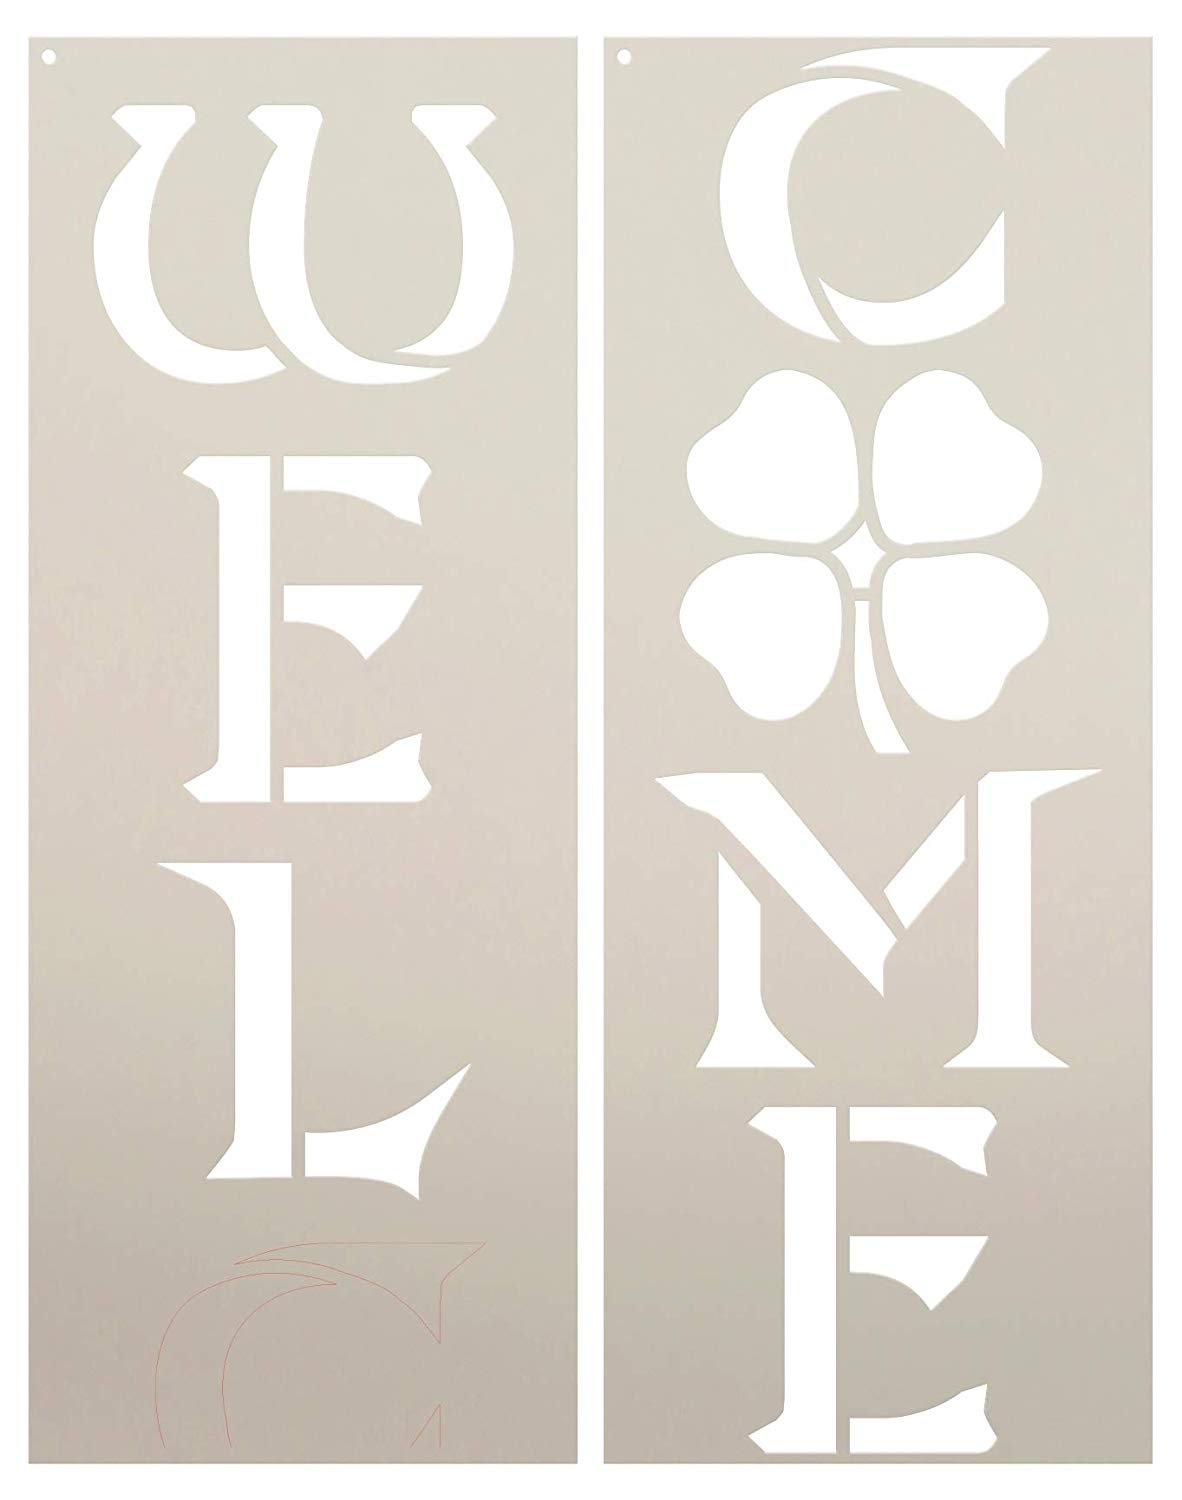 Welcome Tall Porch Stencil with Shamrock by StudioR12 | 2 Piece | DIY Large Vertical Irish Clover Home Decor for St. Patrick's Day | Front Door Entryway | Craft & Paint Wood Leaner Signs | Size 4ft